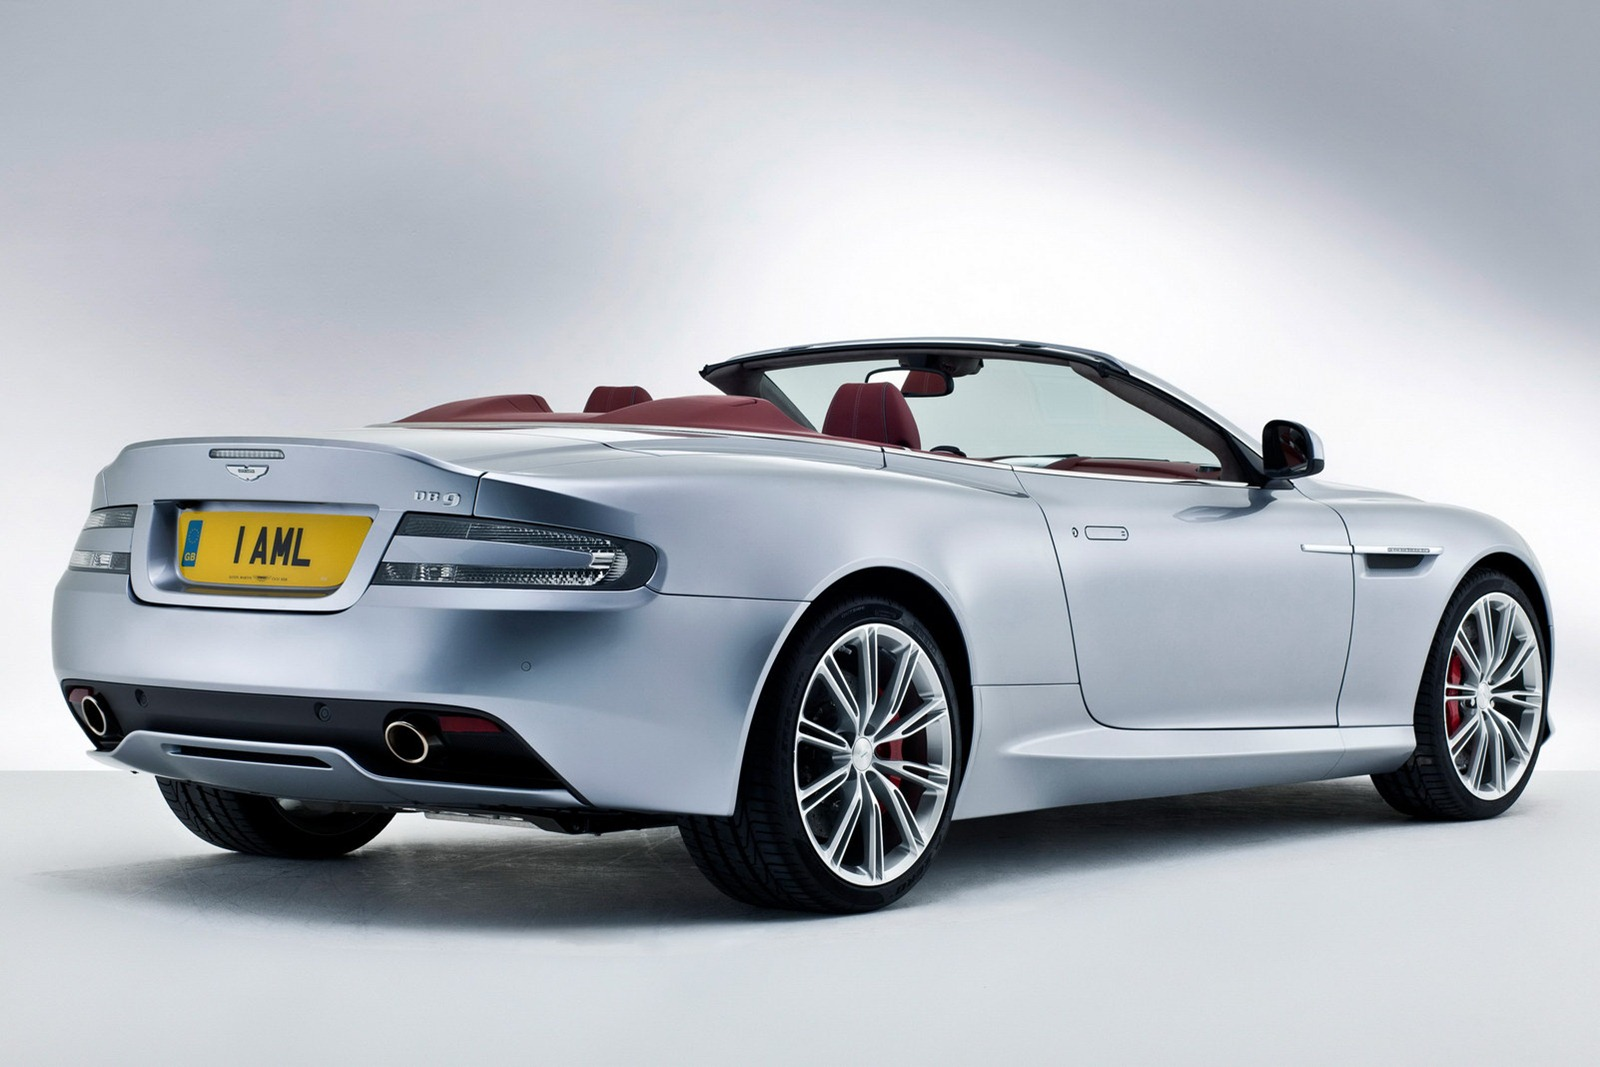 Aston_Martin_DB9_2013_Volante_Rear_3Q